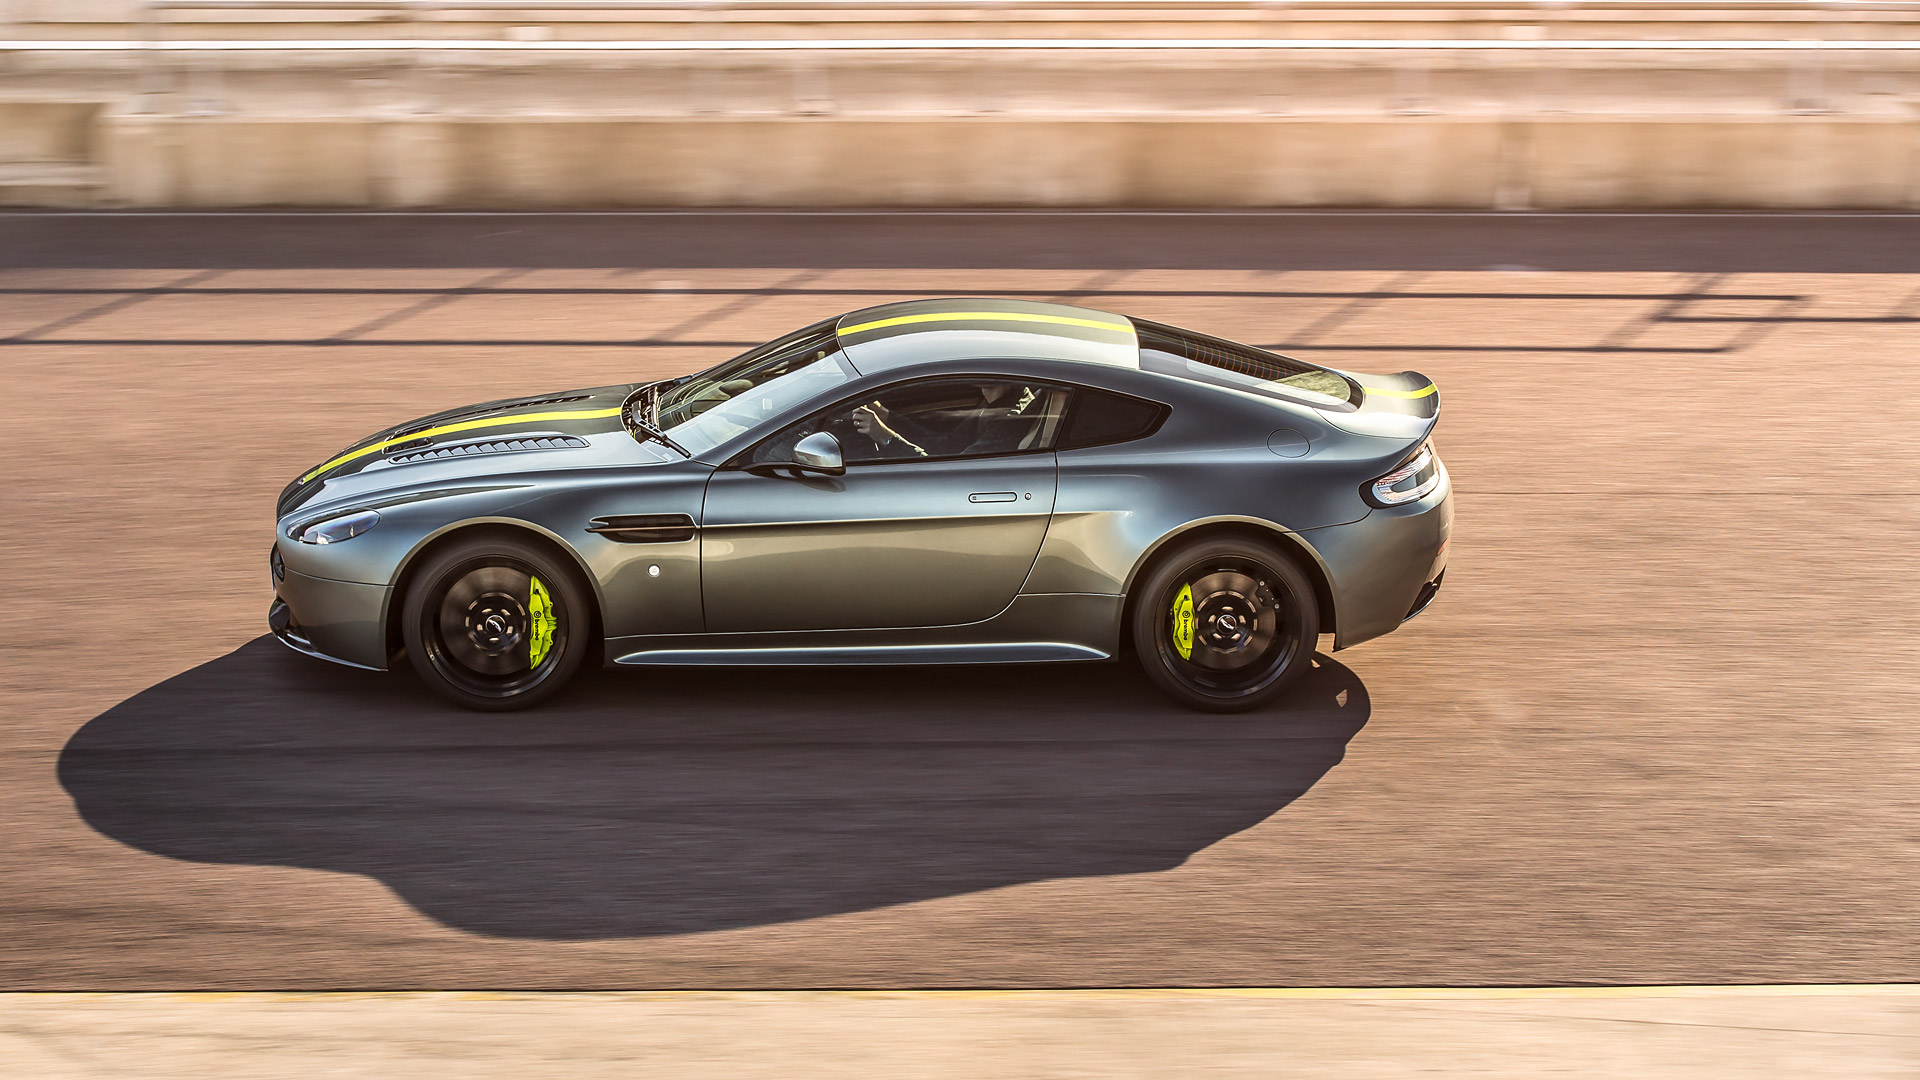 2018 Aston Martin Vantage AMR Wallpapers HD Images   WSupercars 1920x1080